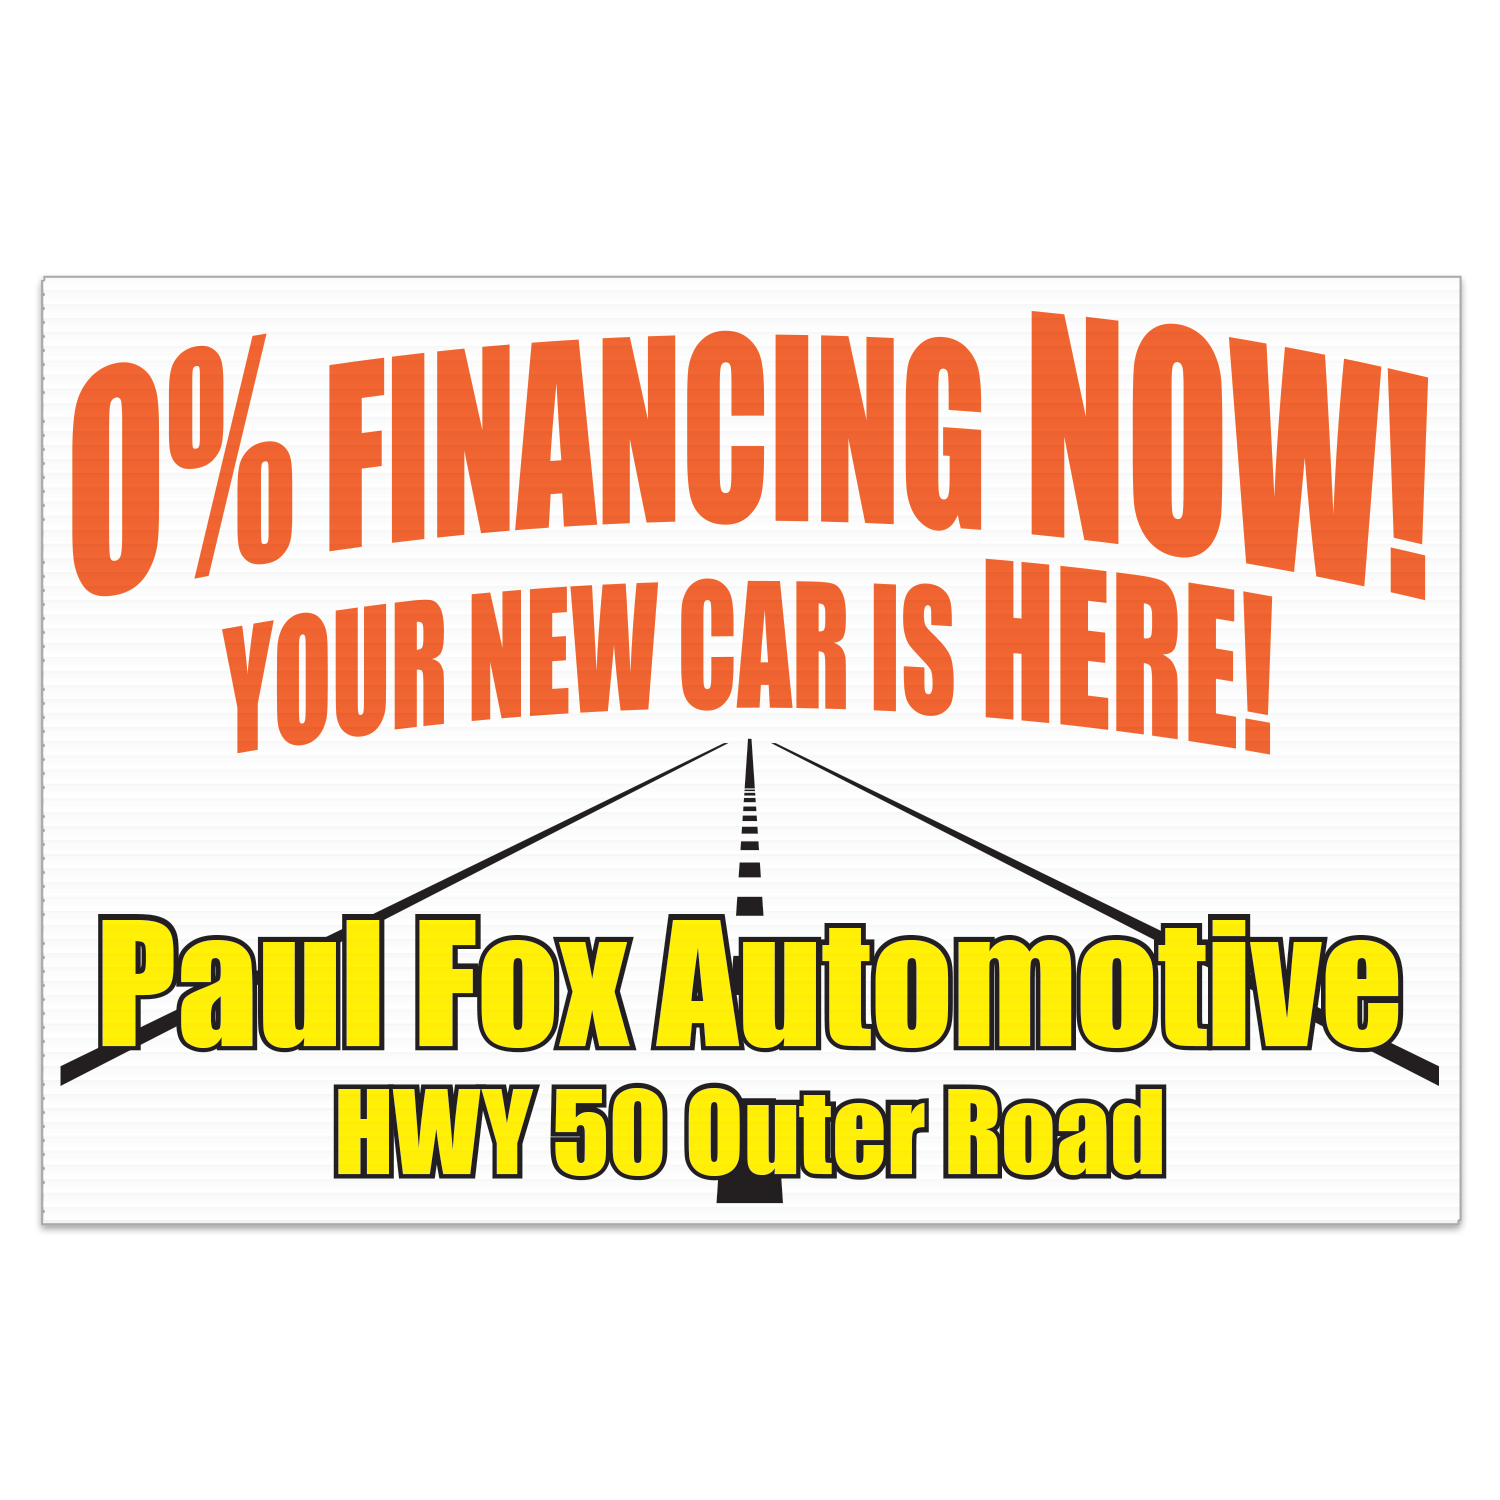 https://www.sswprinting.com/images/products_gallery_images/17831_Paul-Fox-Automotive_hi-res.png